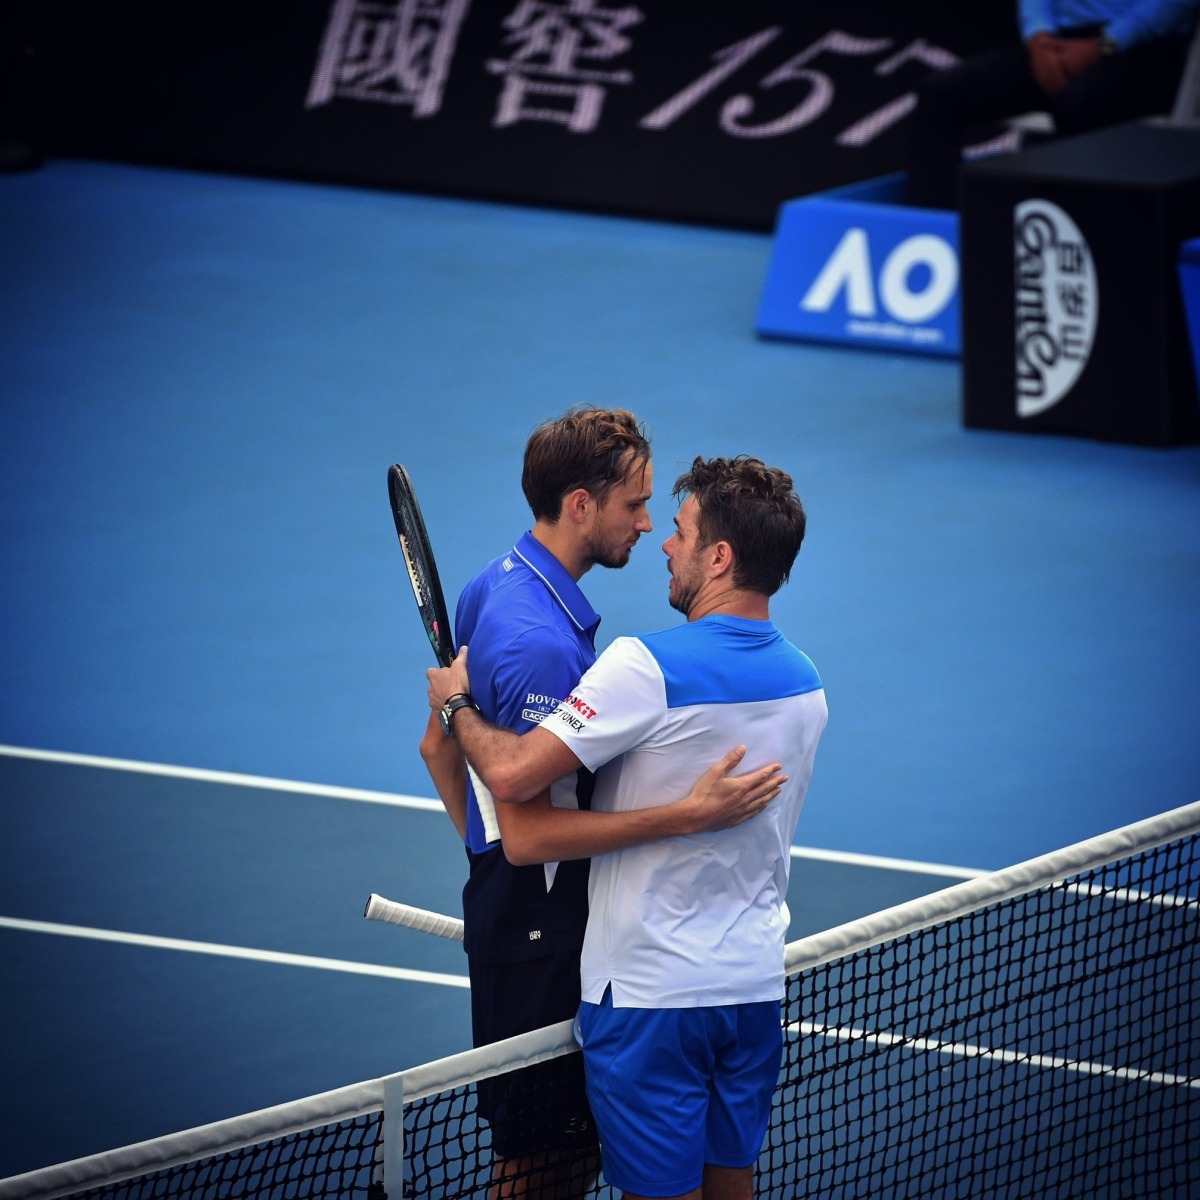 Australian Open: Vintage Wawrinka tricks Medvedev to reach quarters